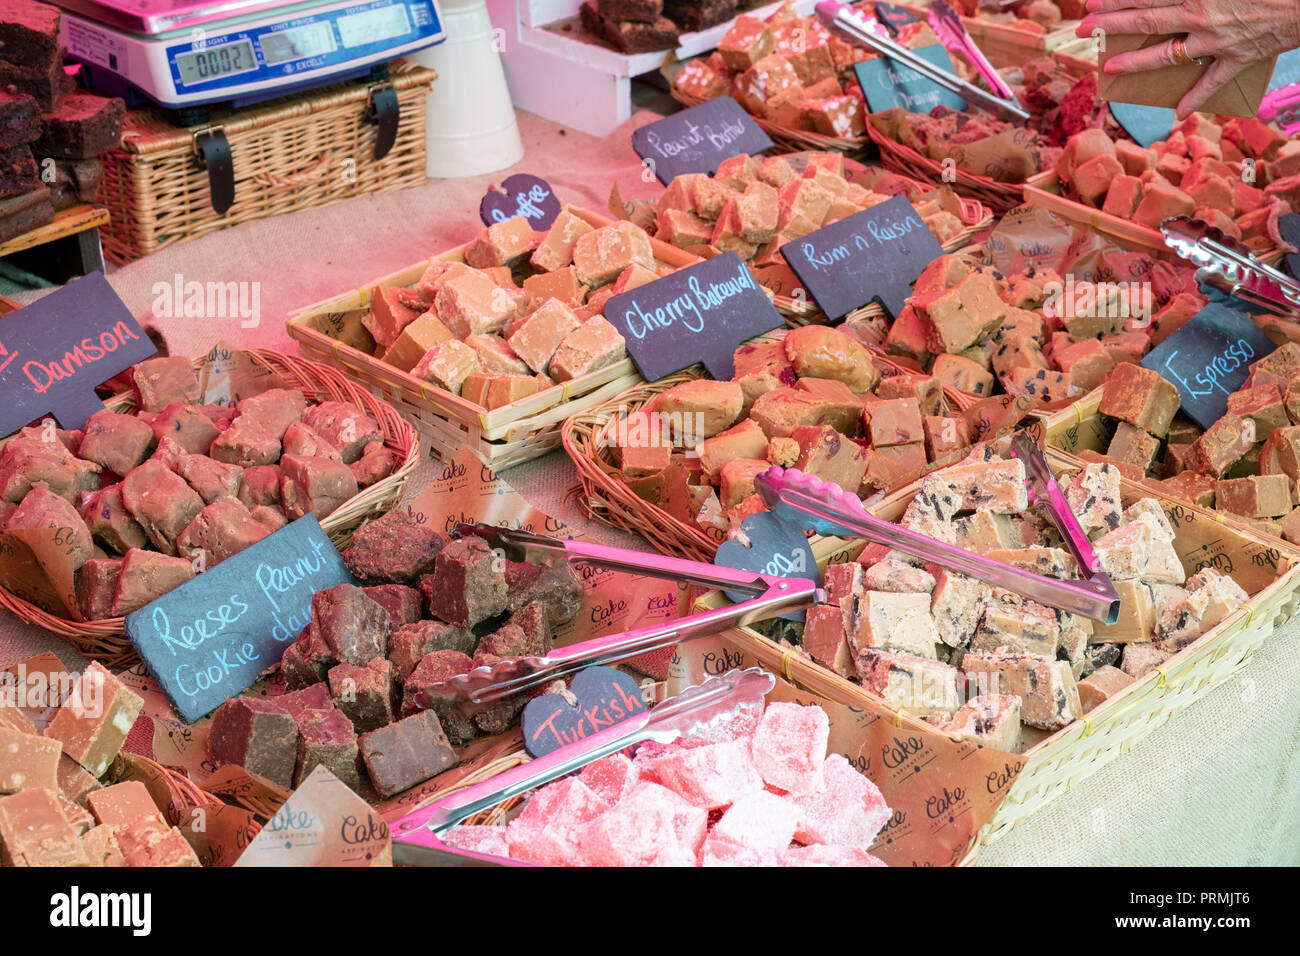 Fudge stall at the Thame food festival. Thame, Oxfordshire, England - Stock Image